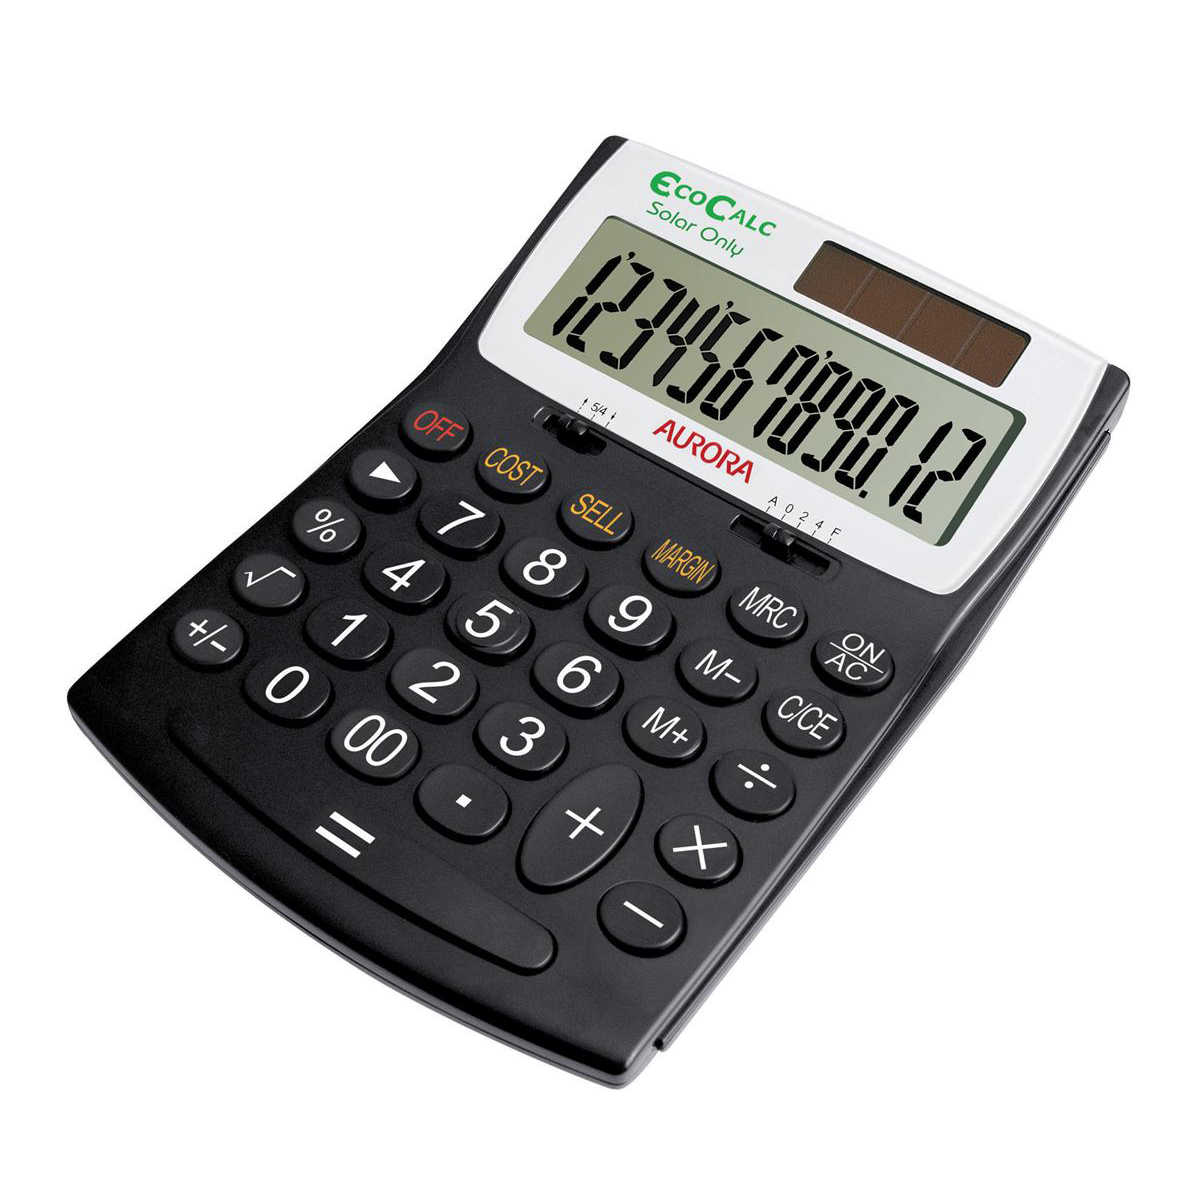 Desktop Calculator Aurora EcoCalc Desktop Calculator 12 Digit 3 Key Memory Recycled Solar Power 128x31x180mm Black Ref EC707